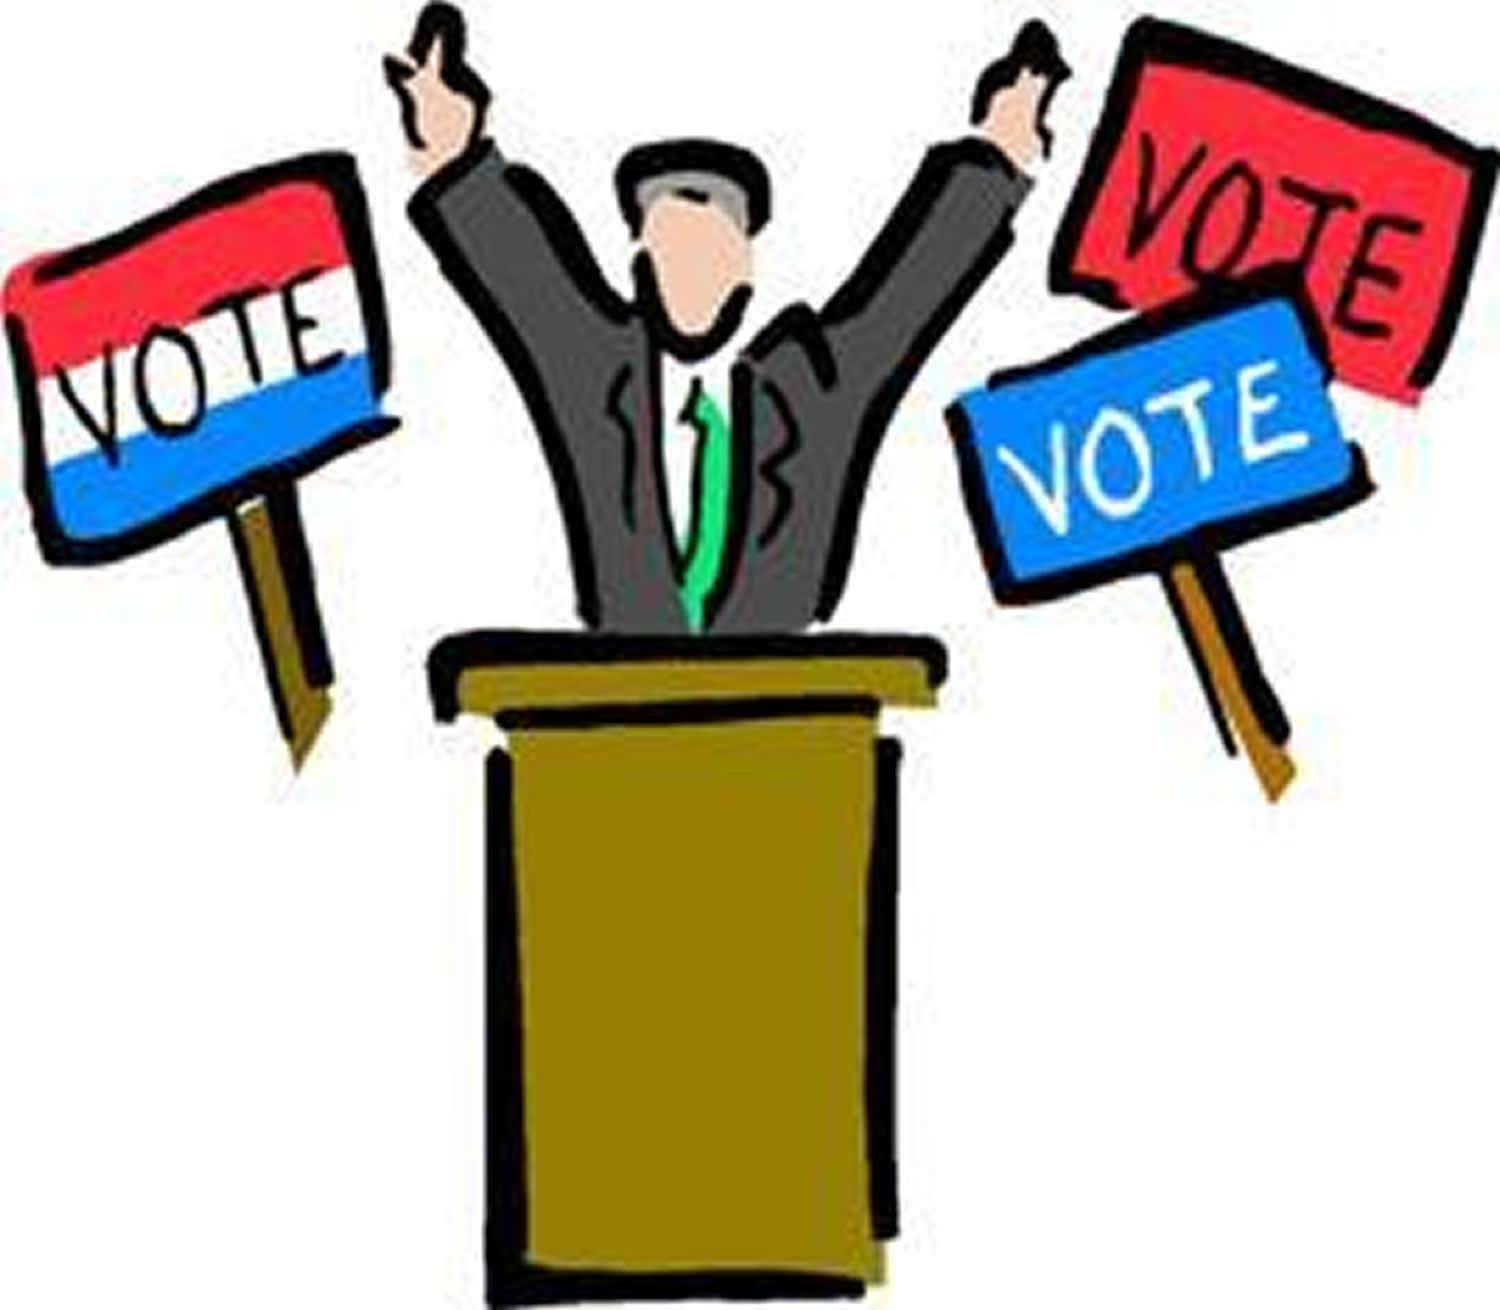 ms-office-clipart-292945.political-candidate-resizedjpg